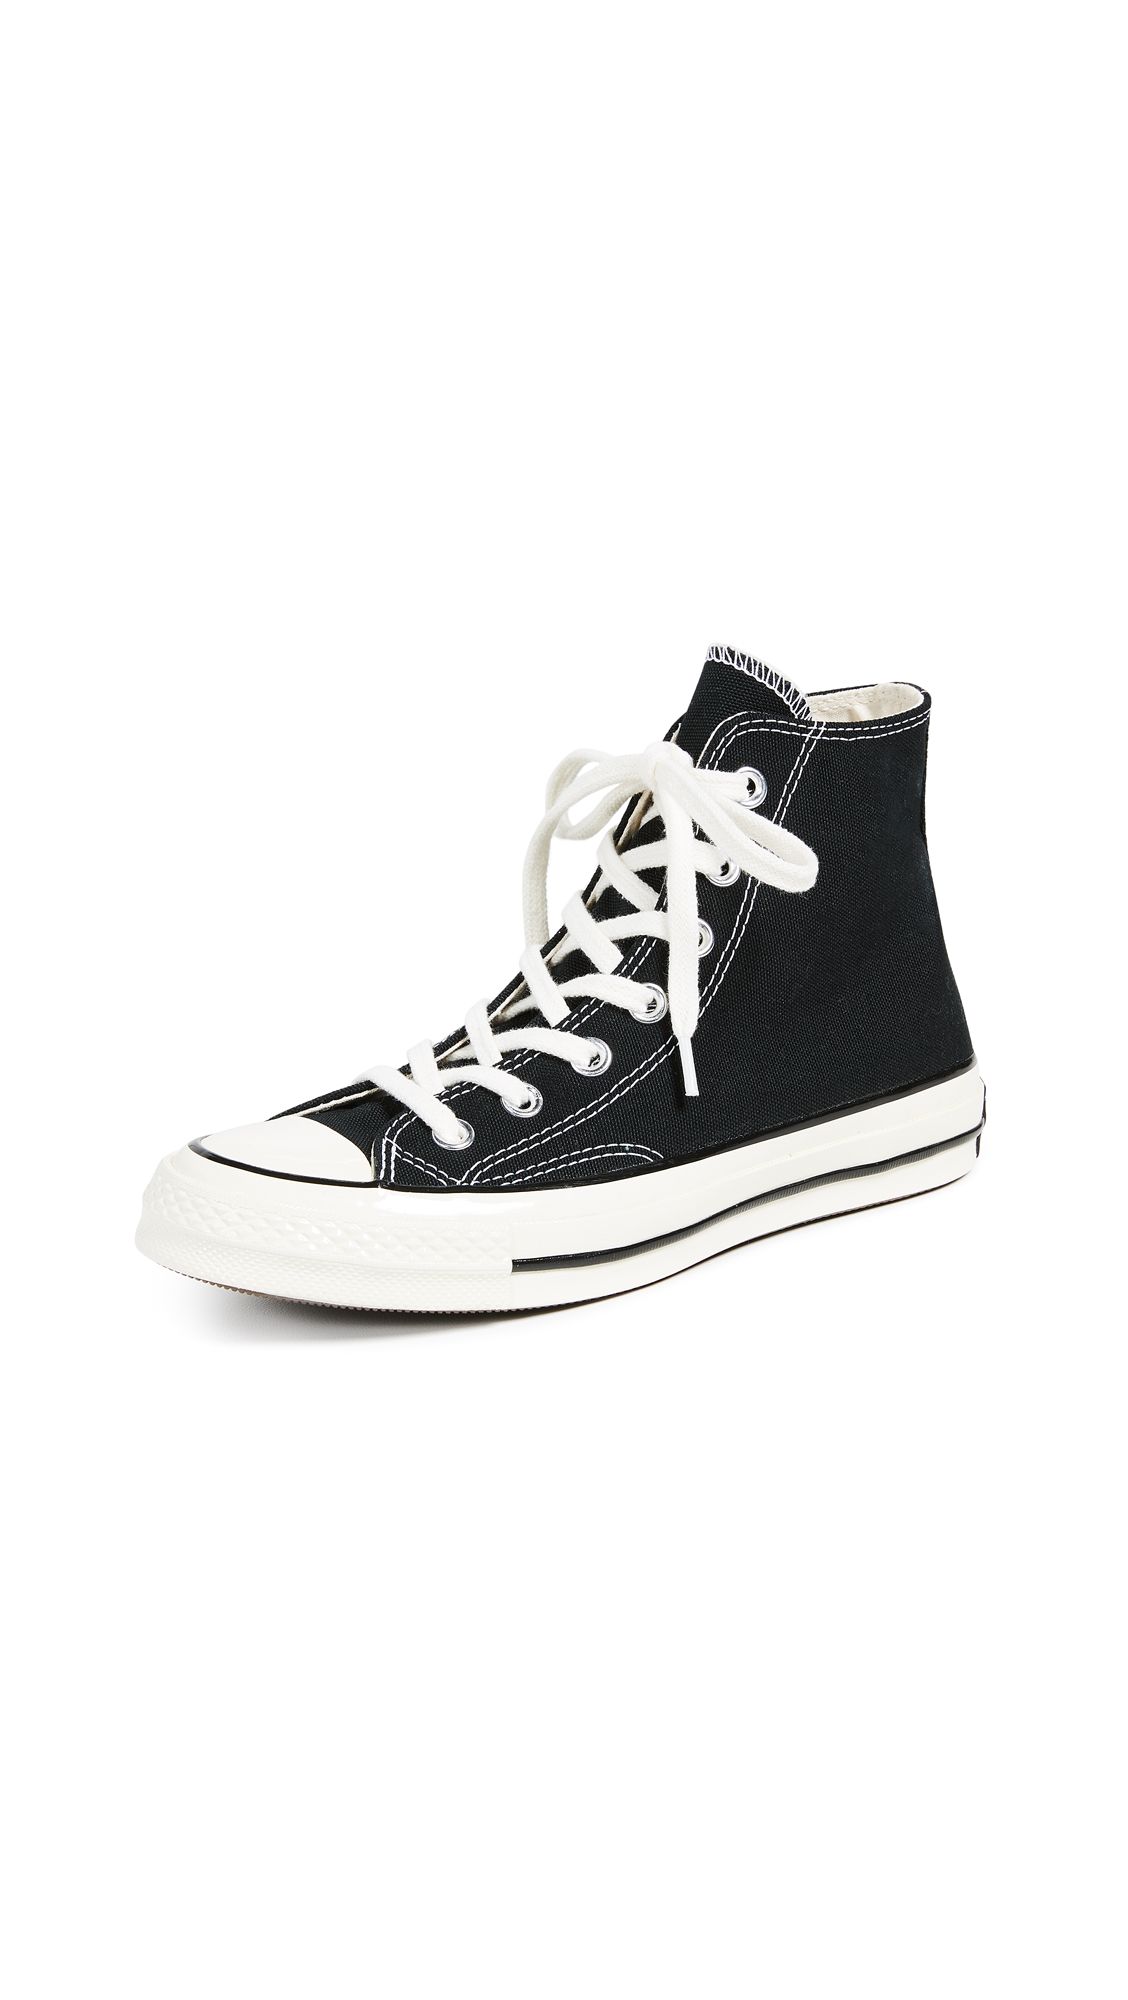 Converse All Star 70s High Top Sneakers - Black